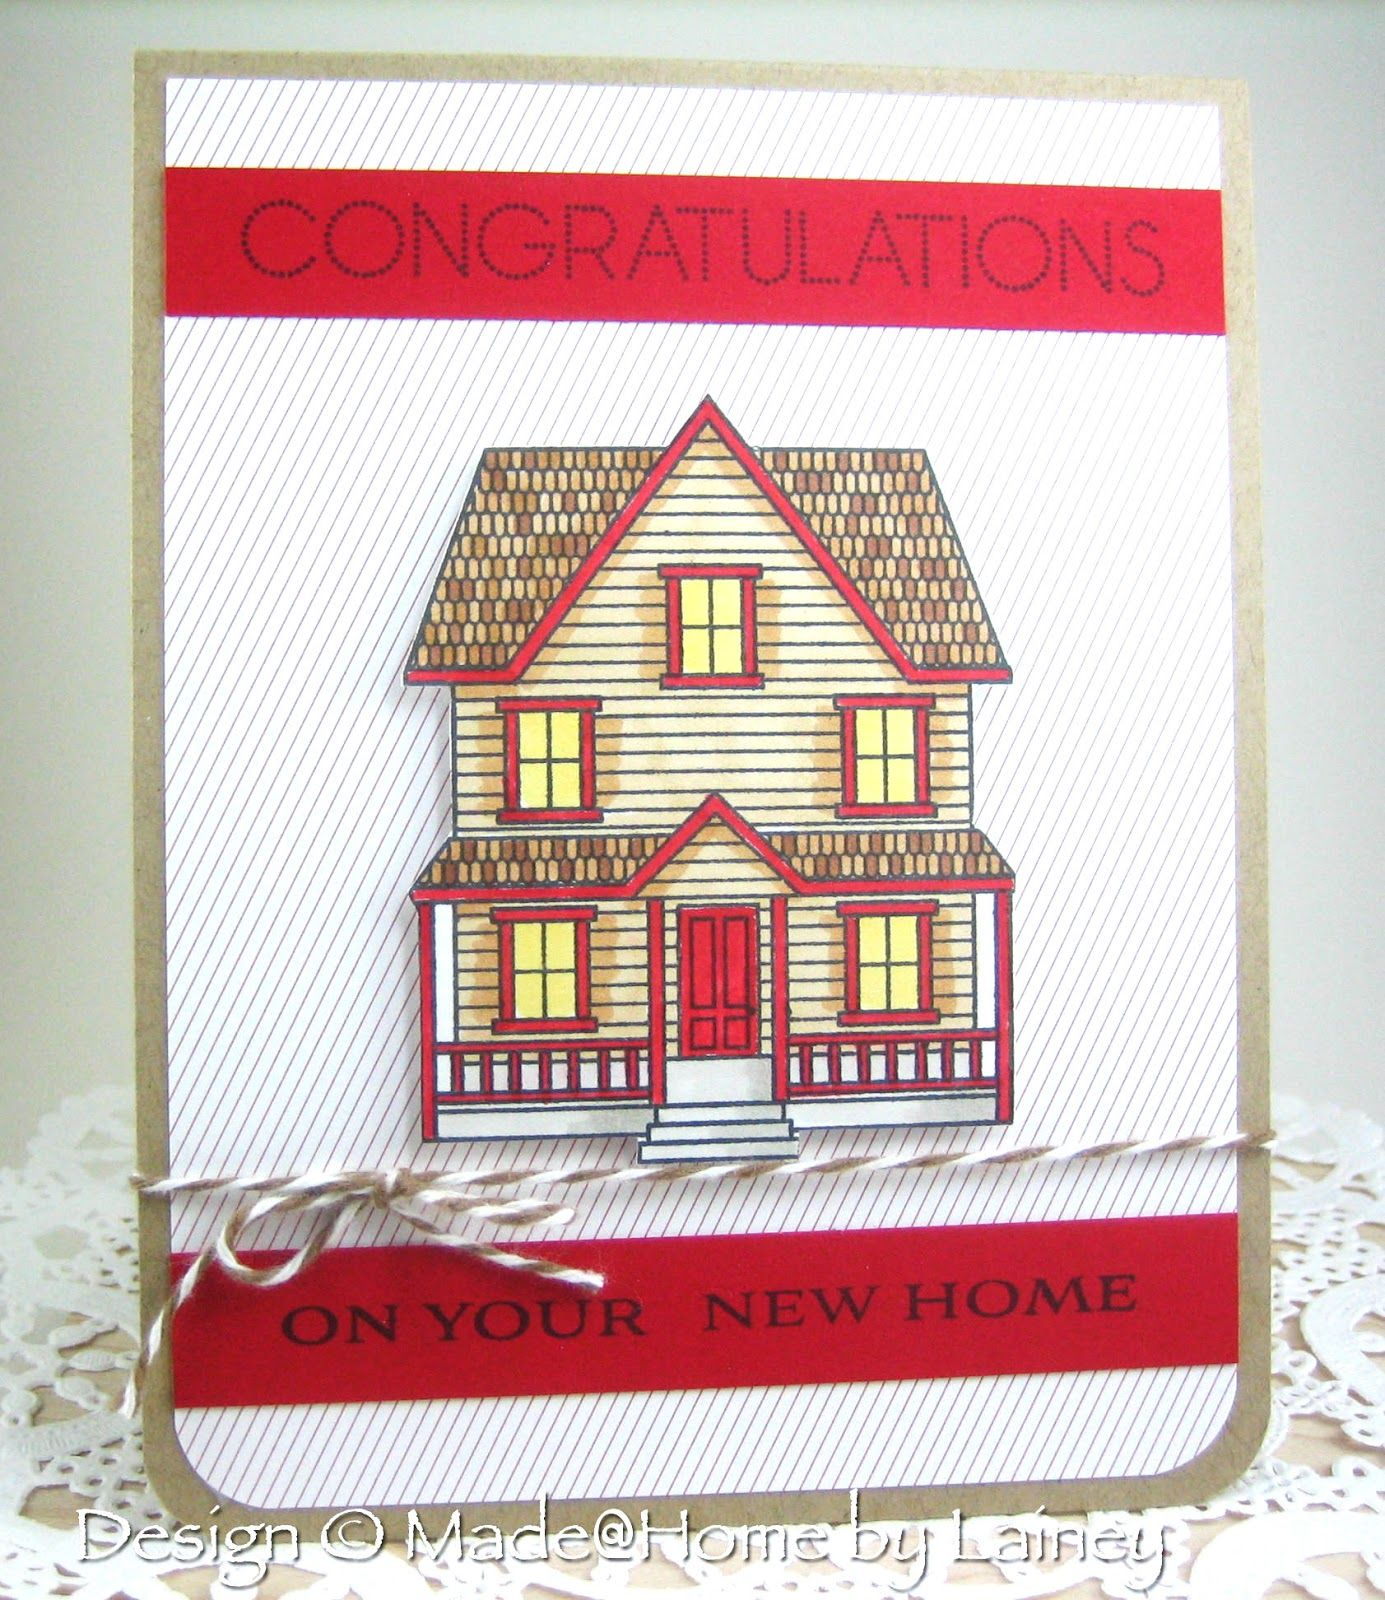 Hearty congratulations pictures on new home.